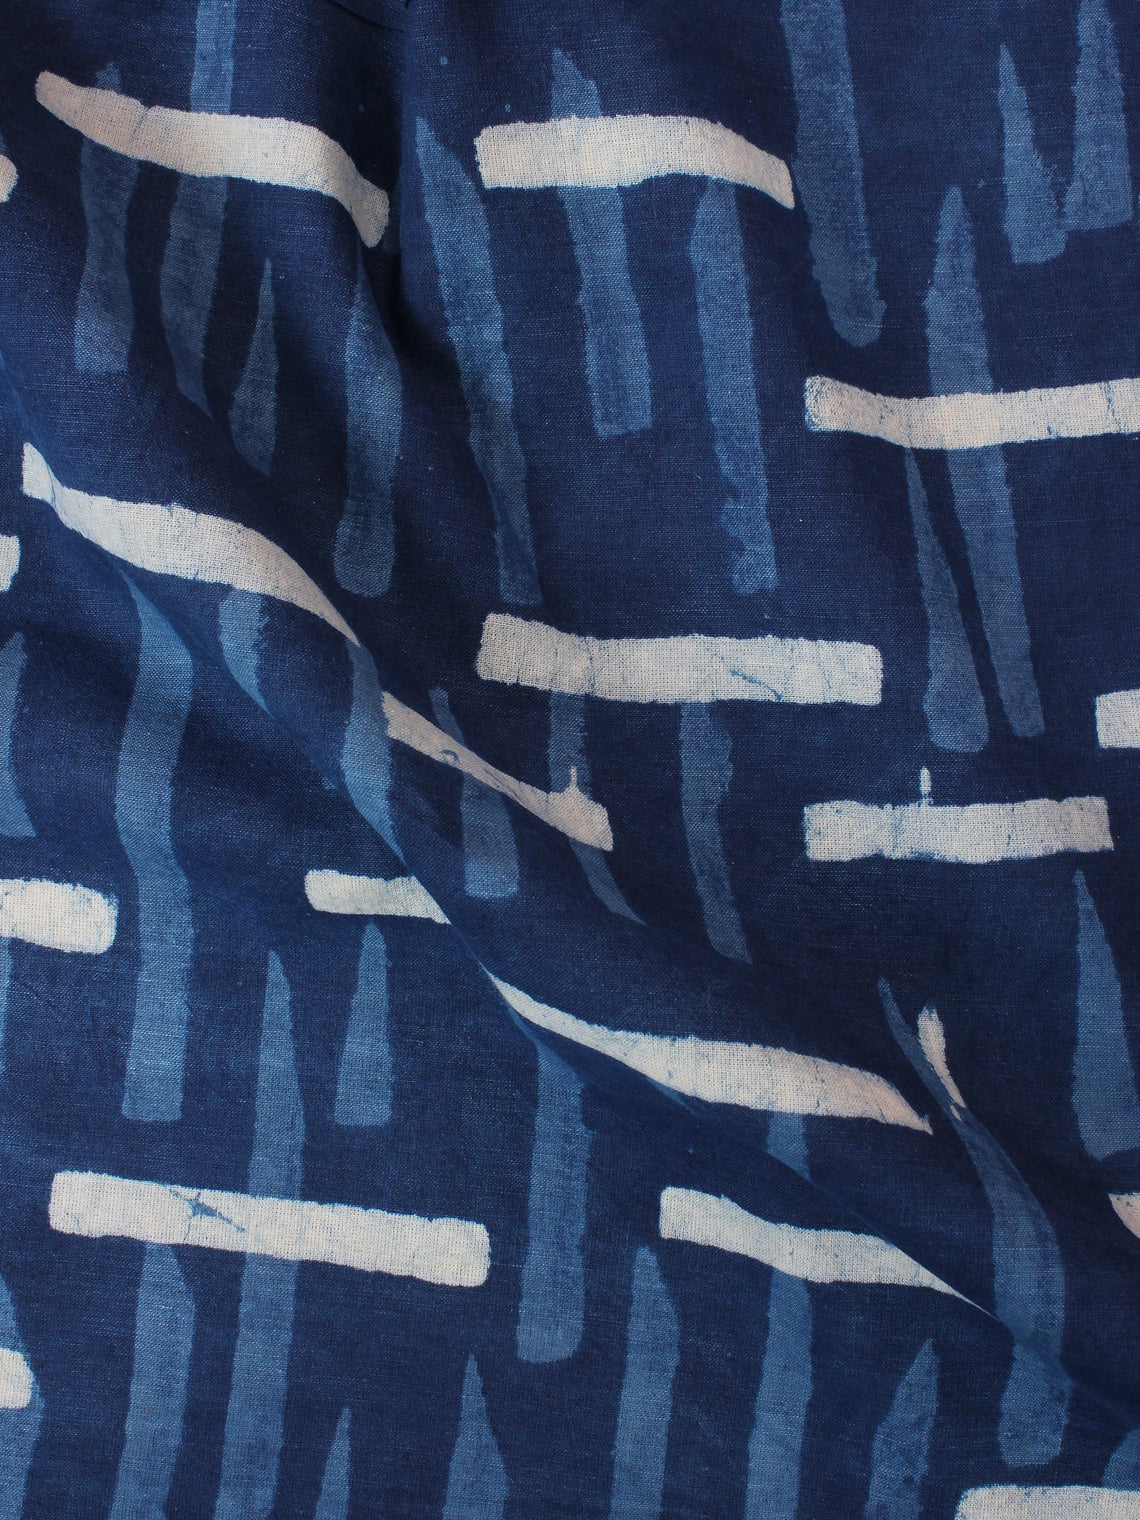 Indigo Blue White Hand Block Printed Cotton Fabric Per Meter - F0916356